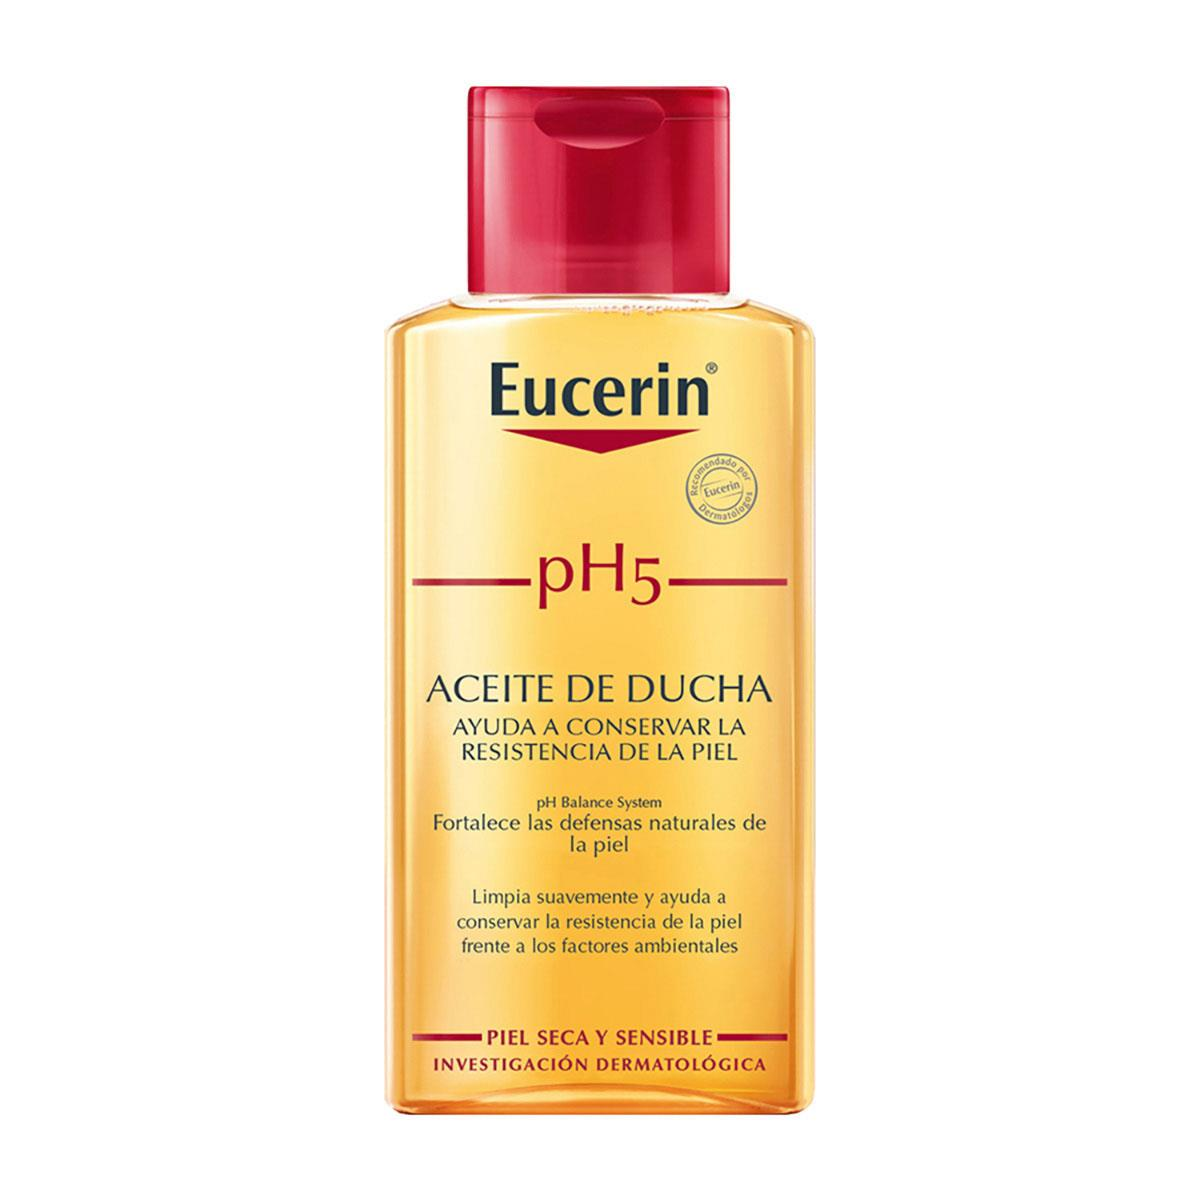 Eucerin Ph5 Lipid Duch Show Oil 1 Botella Liquido 200 Ml